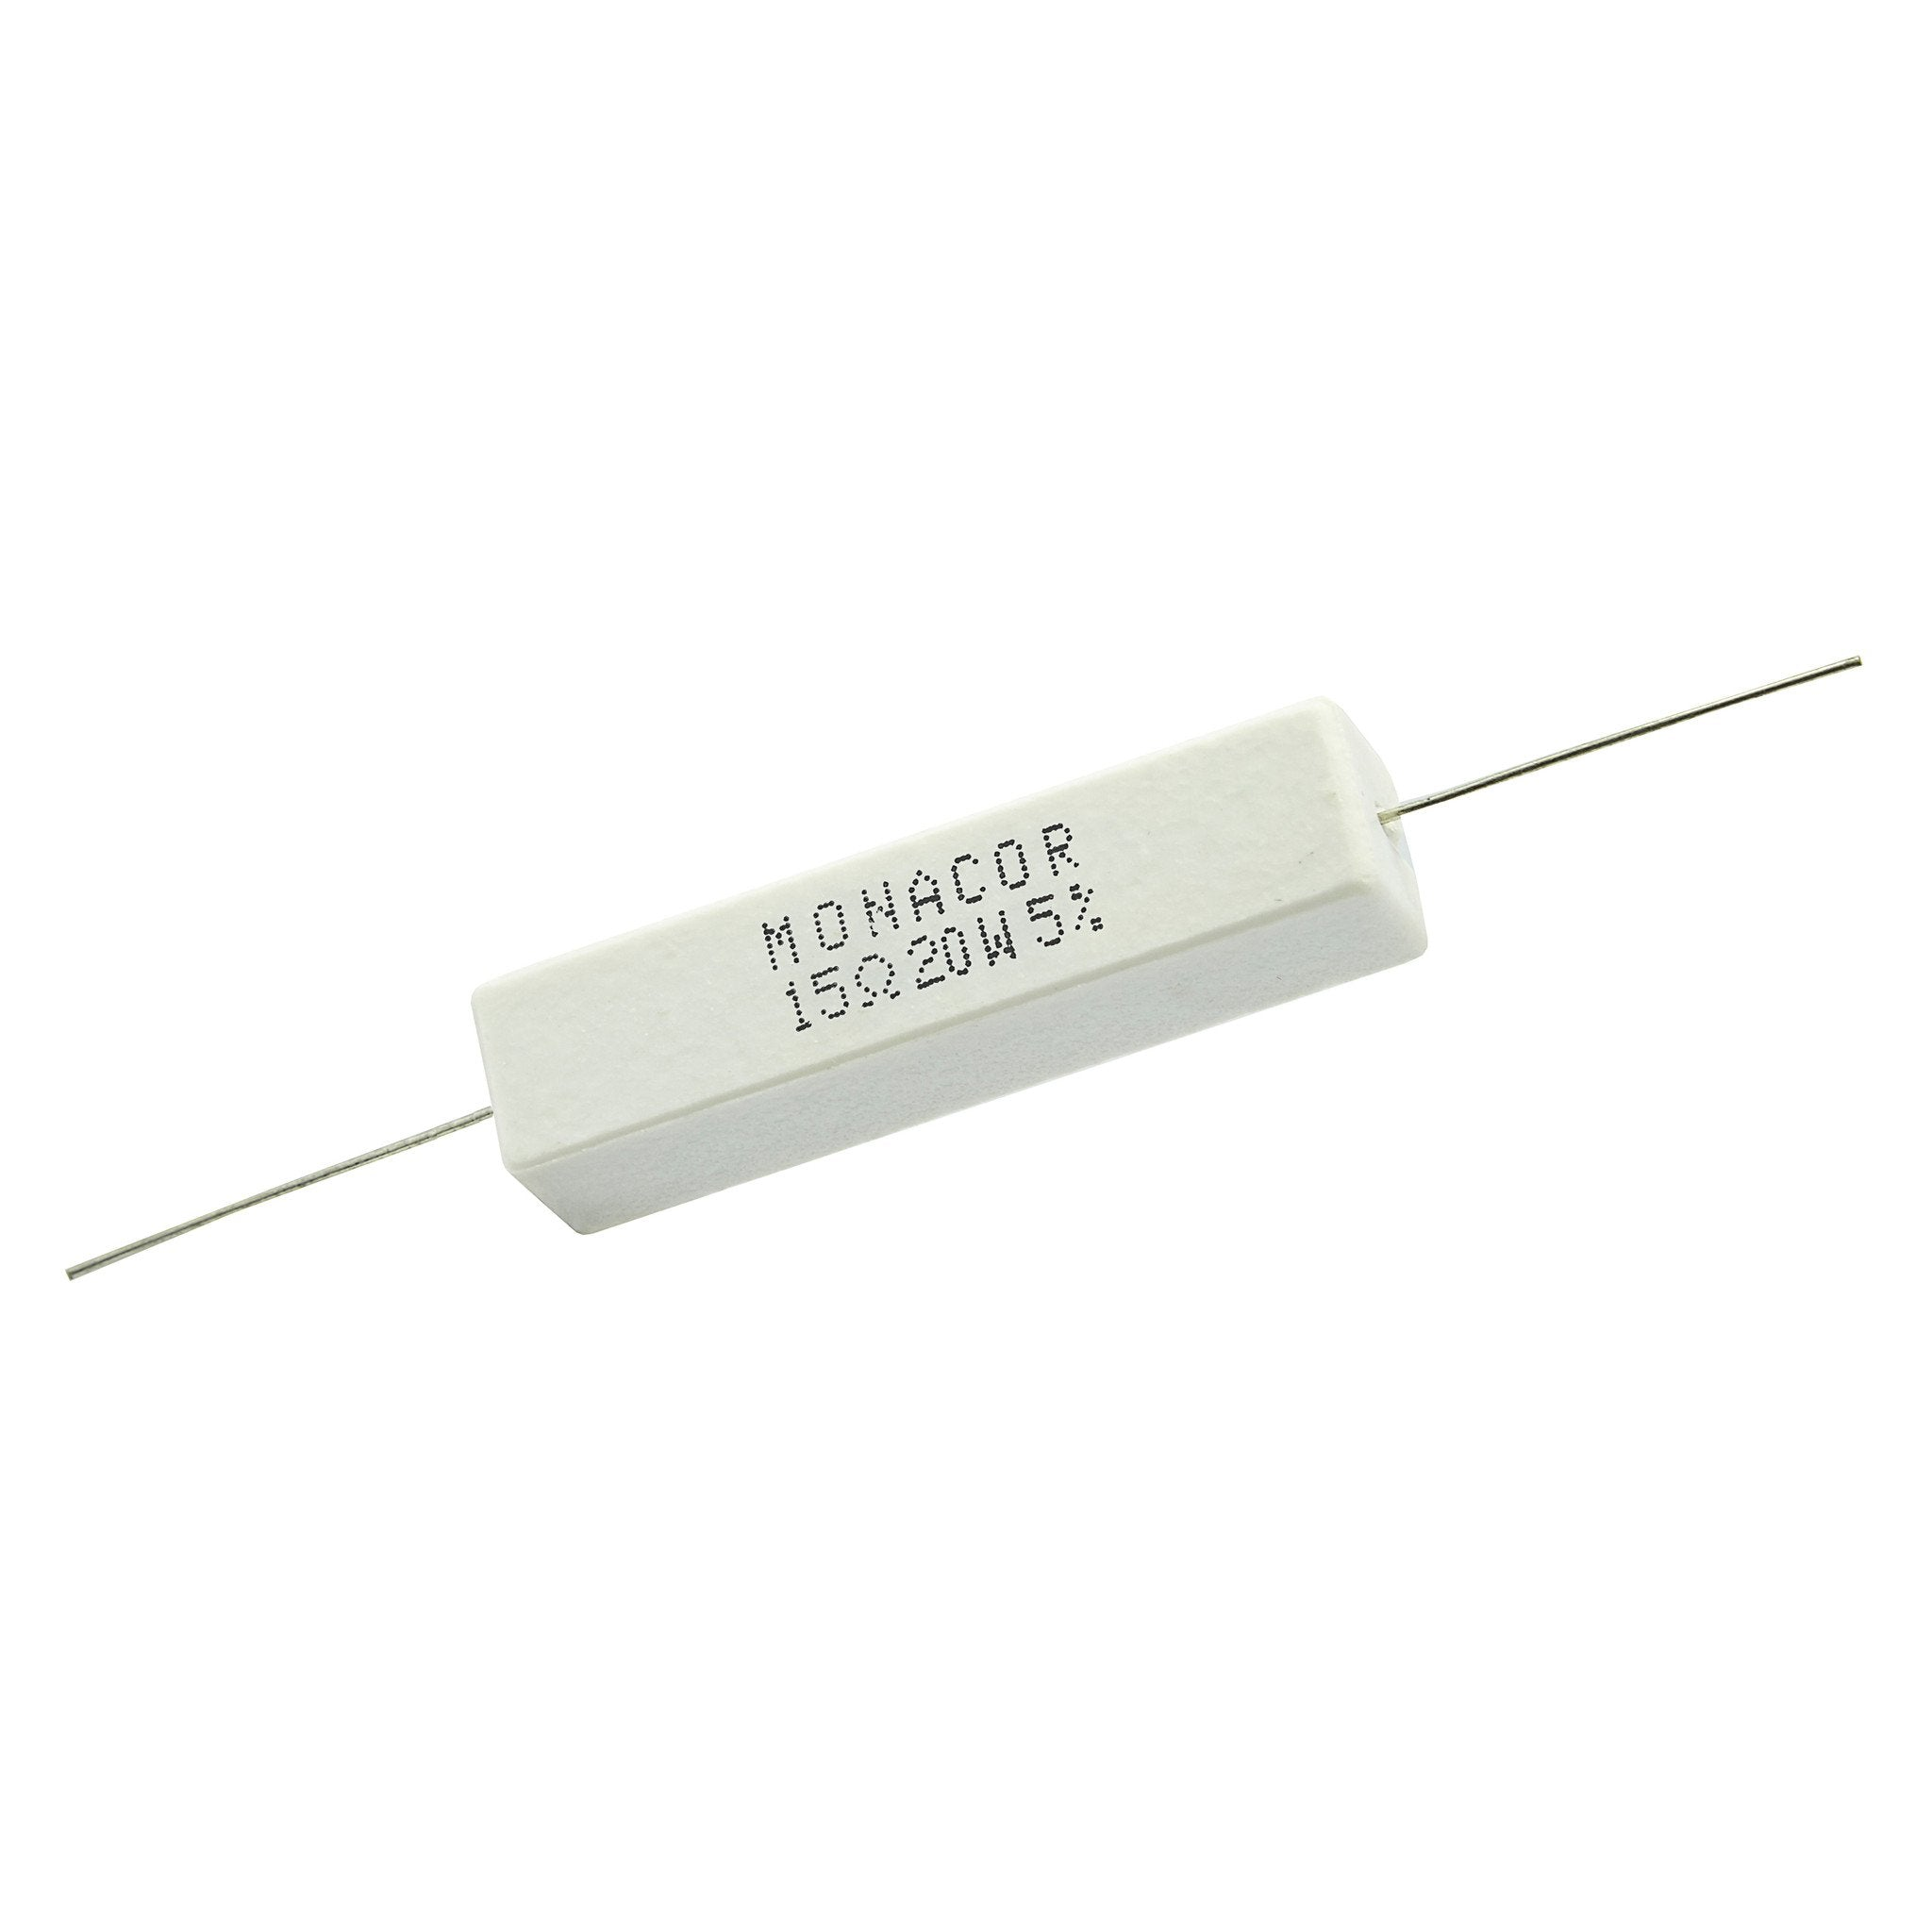 15 Ohm 20 Watt 5% Ceramic Wirewound Resistor - Willys-Hifi Ltd